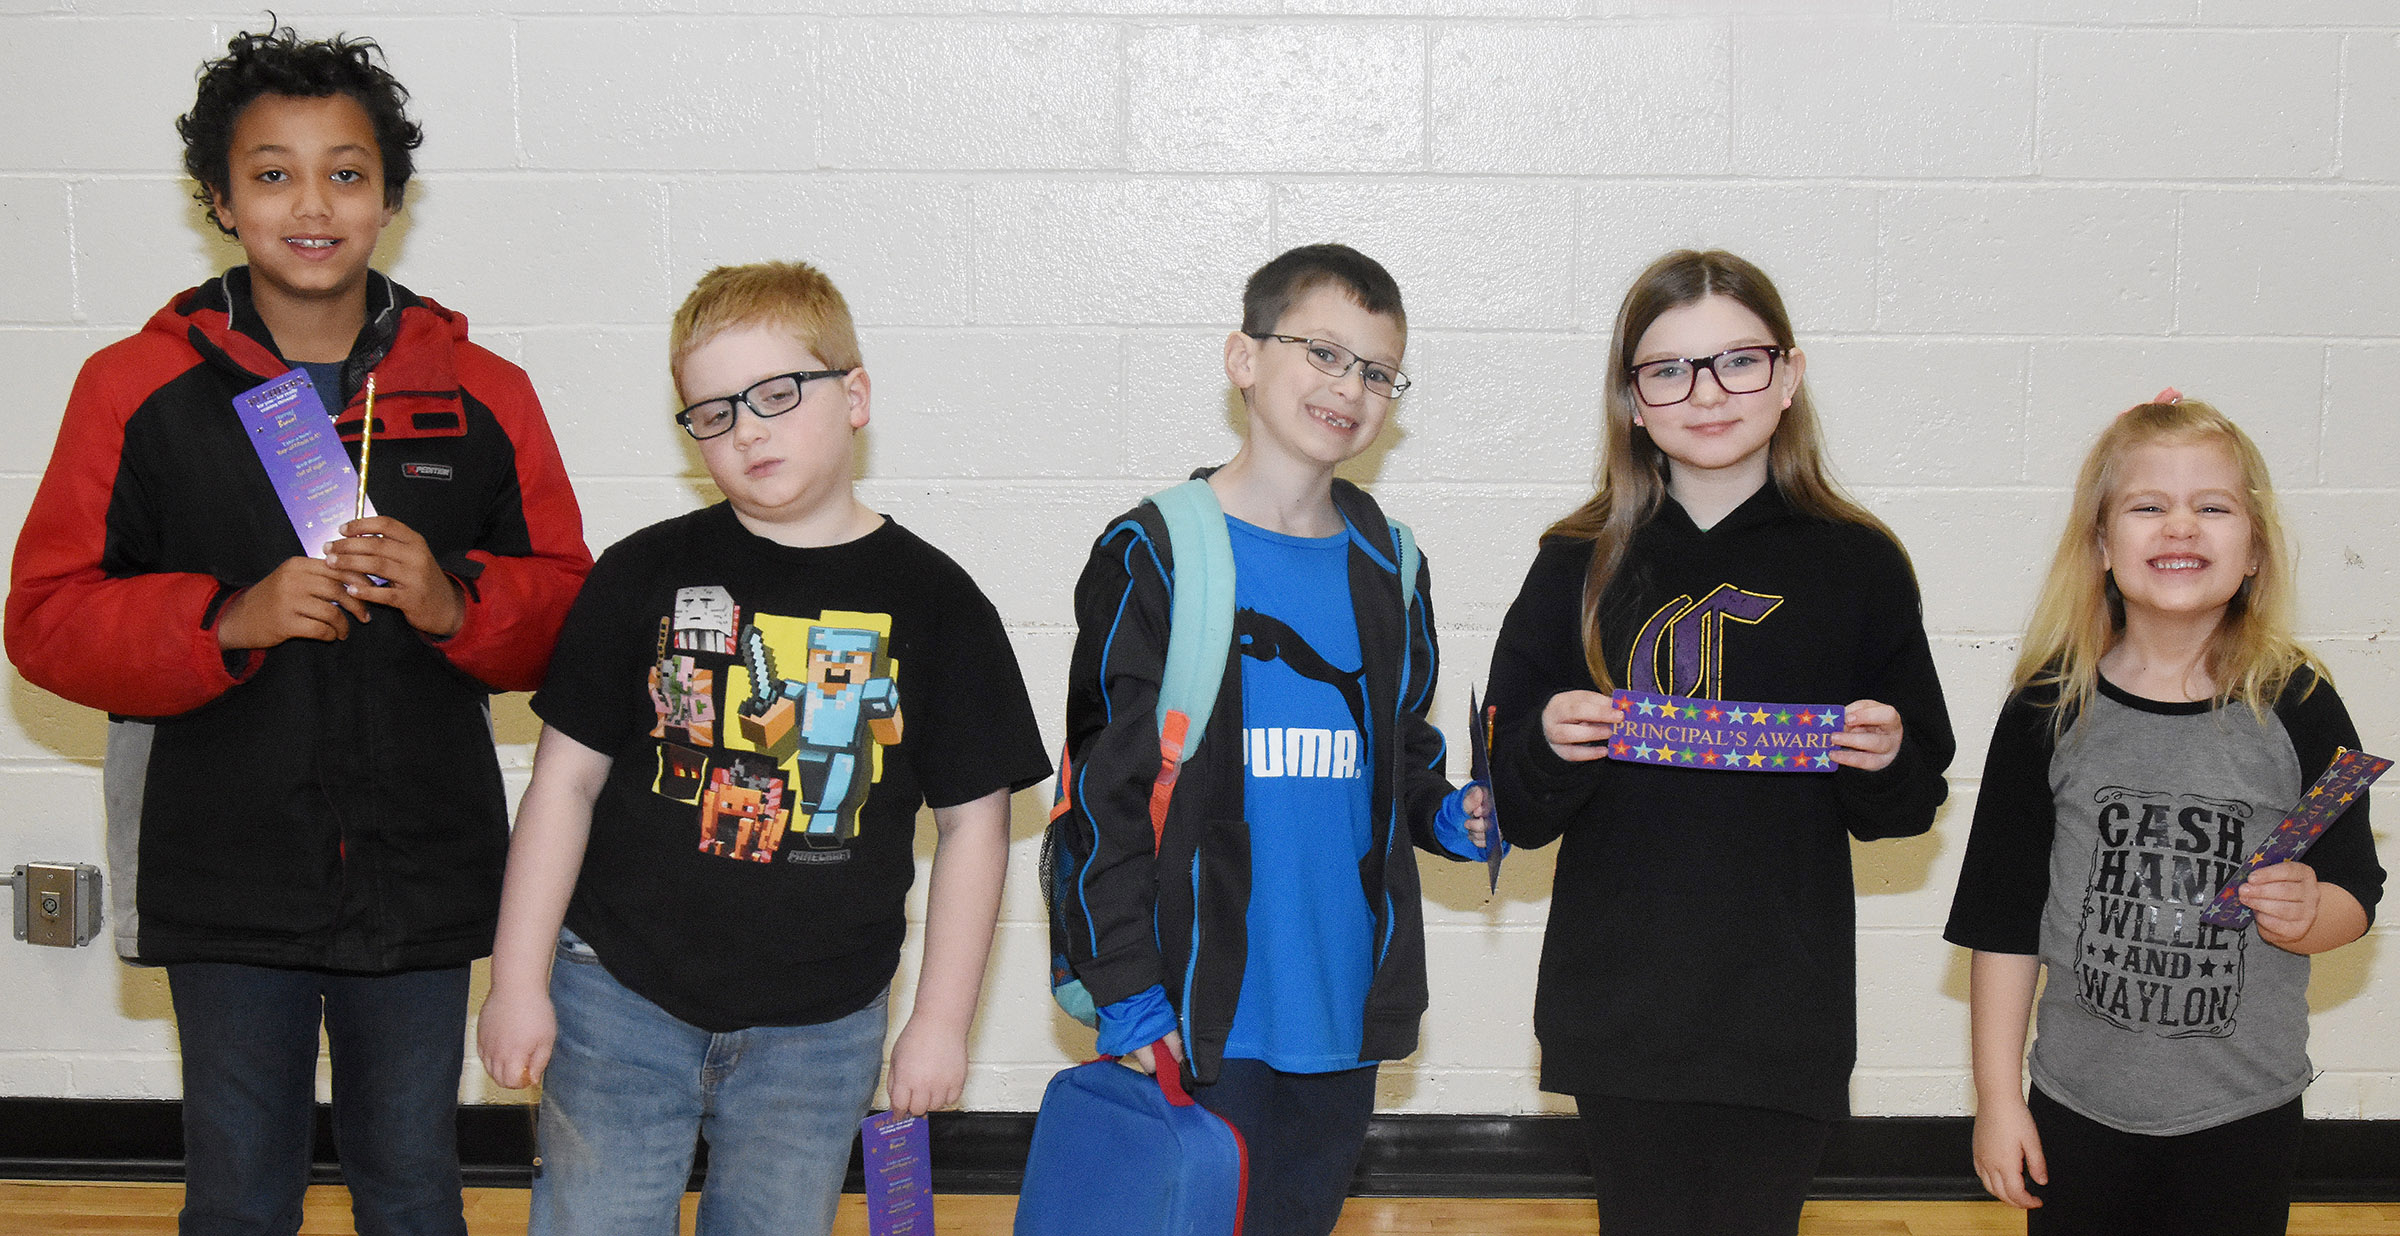 From left are fourth-grader Chance Owens, third-grader Aidan Bowles, first-grader Parker Newton, fifth-grader Morgan Spears and kindergartener Remi Petett. Absent from the photo is second-grader Katelynn Vest.